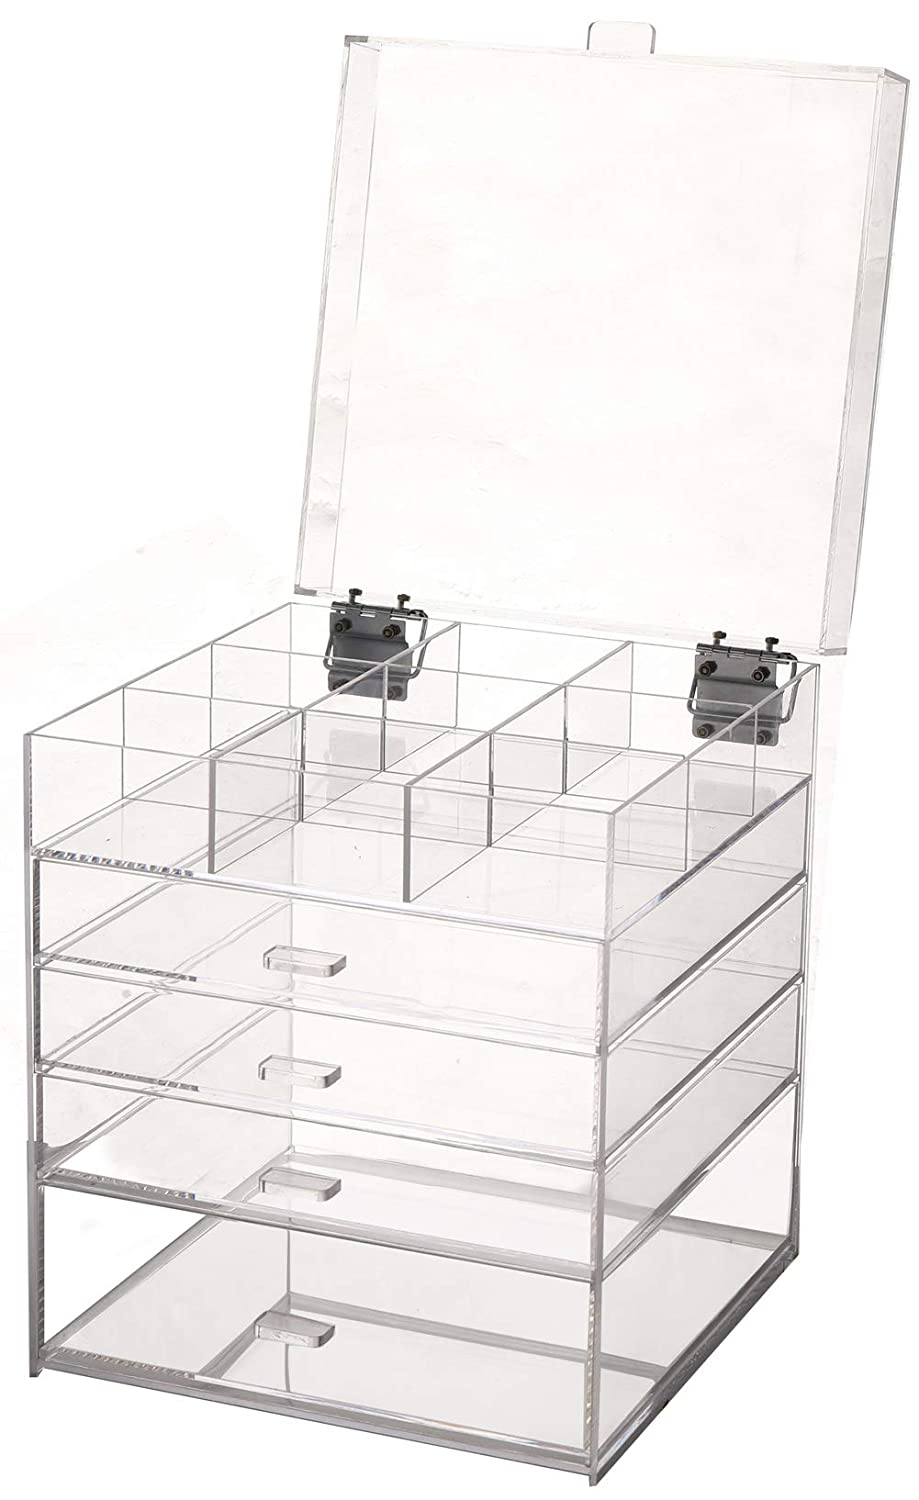 Sooyee Acrylic Large Cube 5 Tier Deep Drawers Cosmetic Organizer with Lid, The Lid can be Upright at 90 Degrees, Handmade Multifunction Makeup Organizer and 9 Grid Divider, Clear- 9.84X9.84X12.3 inch